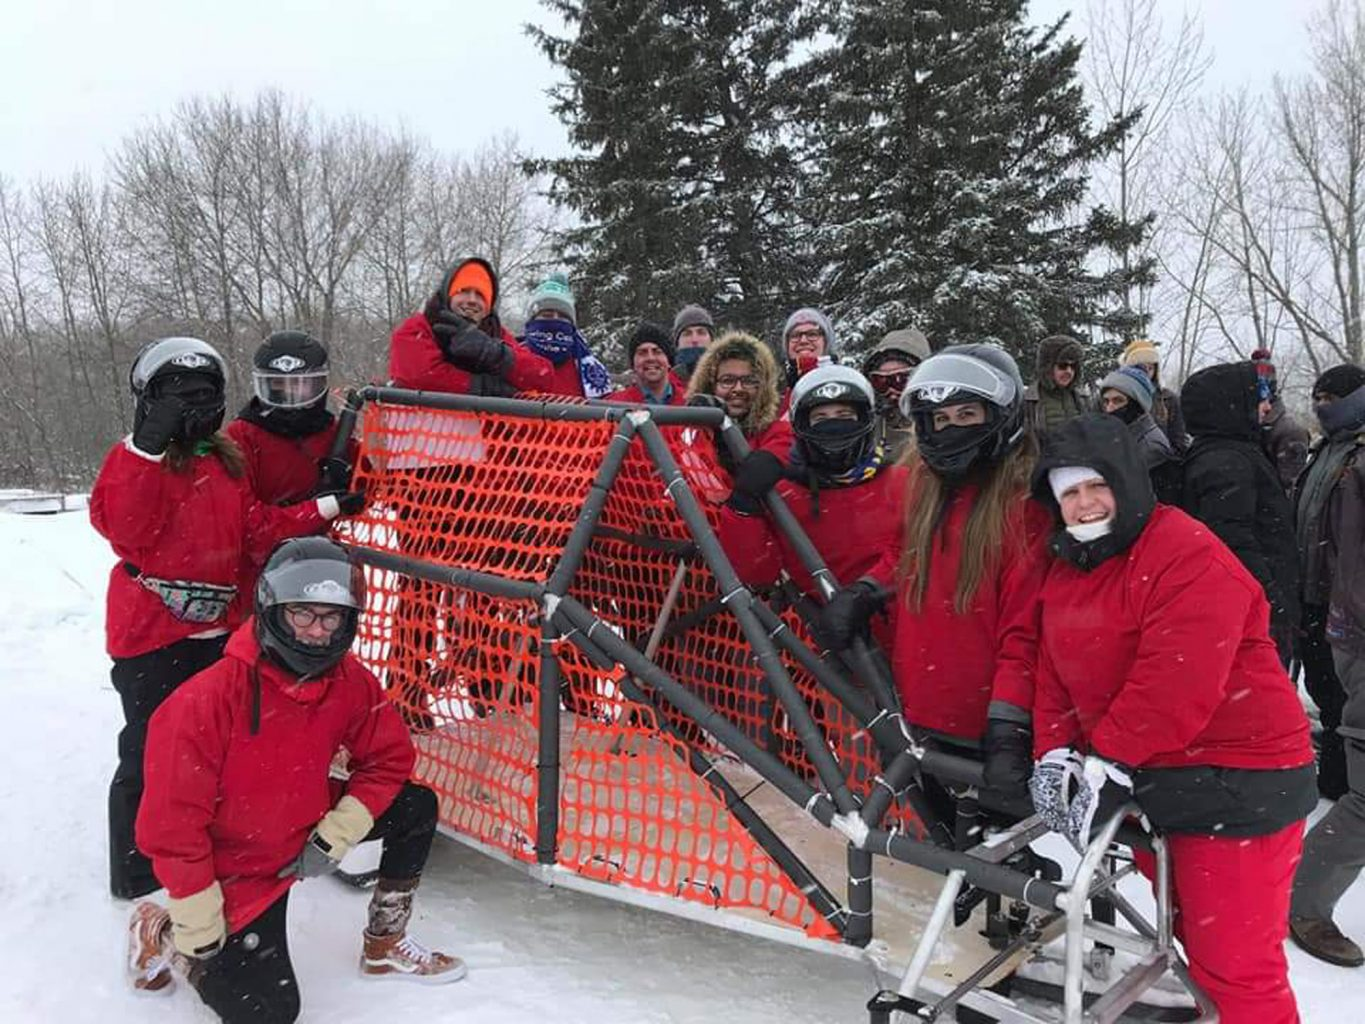 The faculty has a long and rich history of student groups such as the Regina Engineering Concrete Toboggan Team. Other groups that have been bringing together students in fun and meaningful ways include Cougar Racing, Engineers Without Borders, the Institute of Electrical and Electronic Engineering, and newer groups such as U of R Robotics, and the American Society of Heating, Refrigerating and Air-Conditioning.